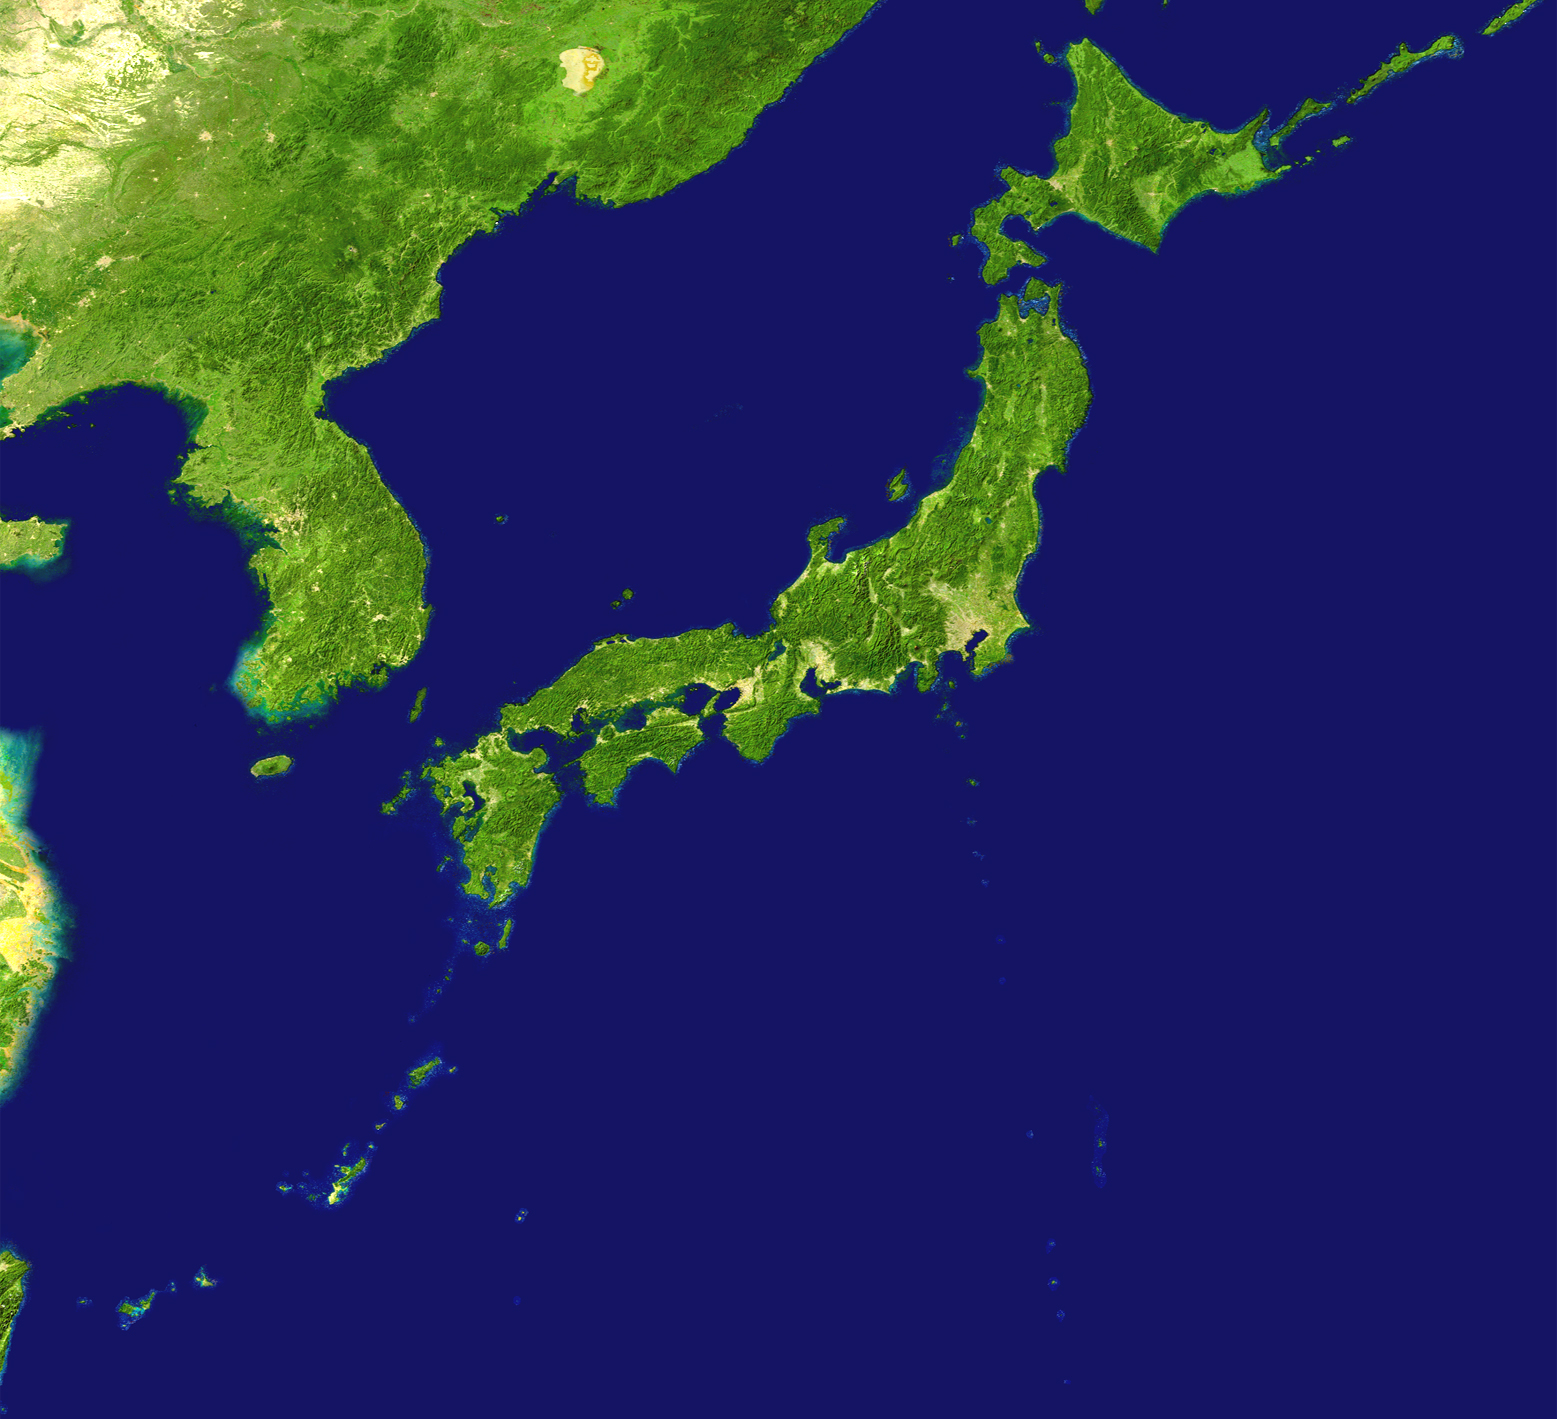 Large Russian Island North Of Japan